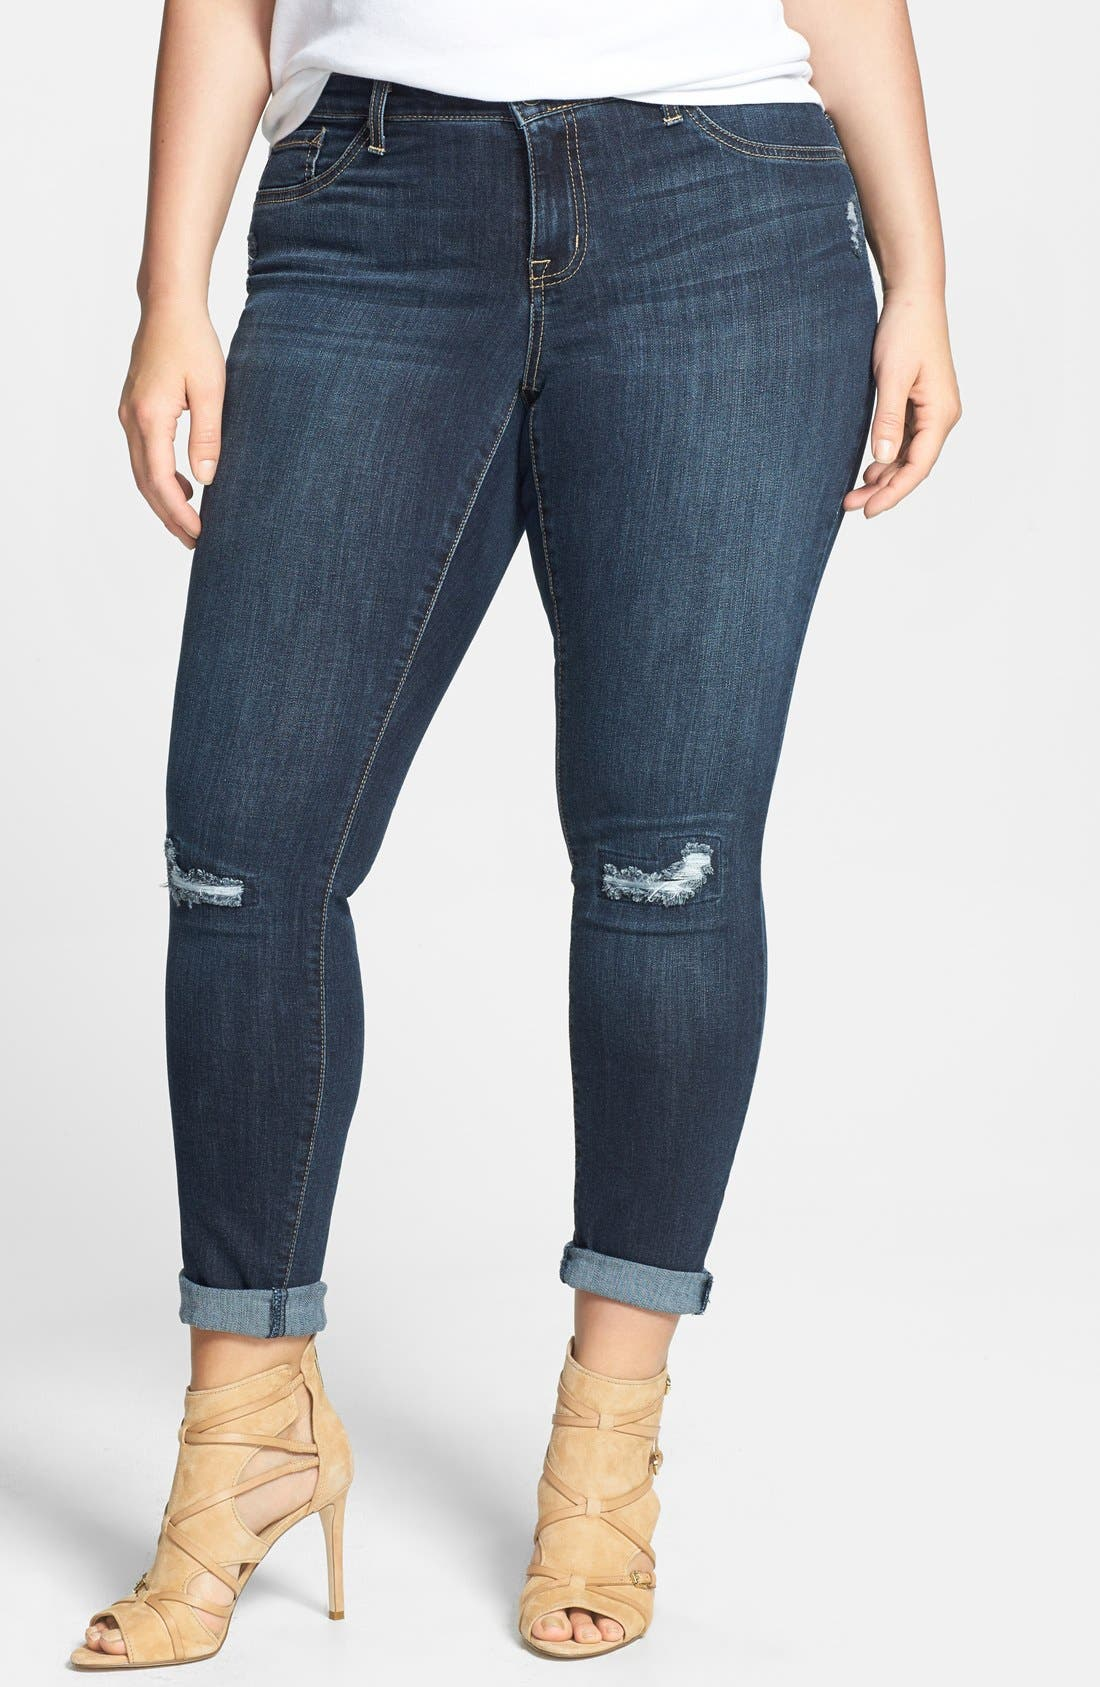 Alternate Image 1 Selected - Jessica Simpson 'Kiss Me' Stretch Skinny Jeans (Plus Size)